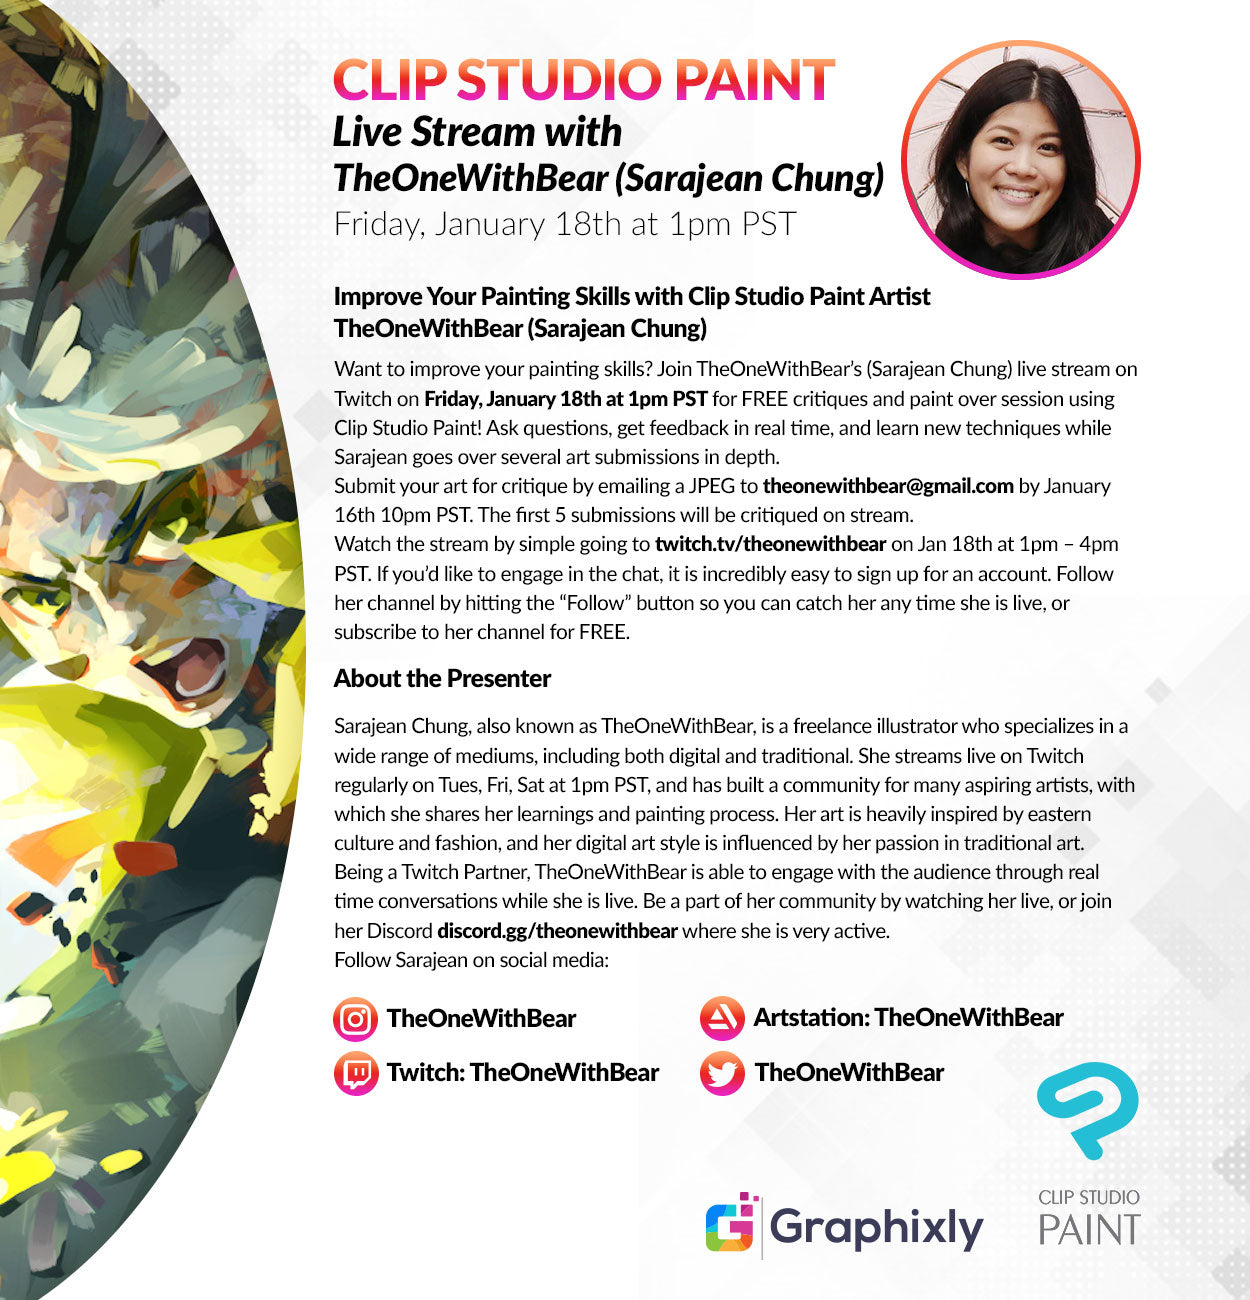 Twitch Live Stream - Improve Your Painting Skills with Clip Studio Paint Artist Sarajean Chung